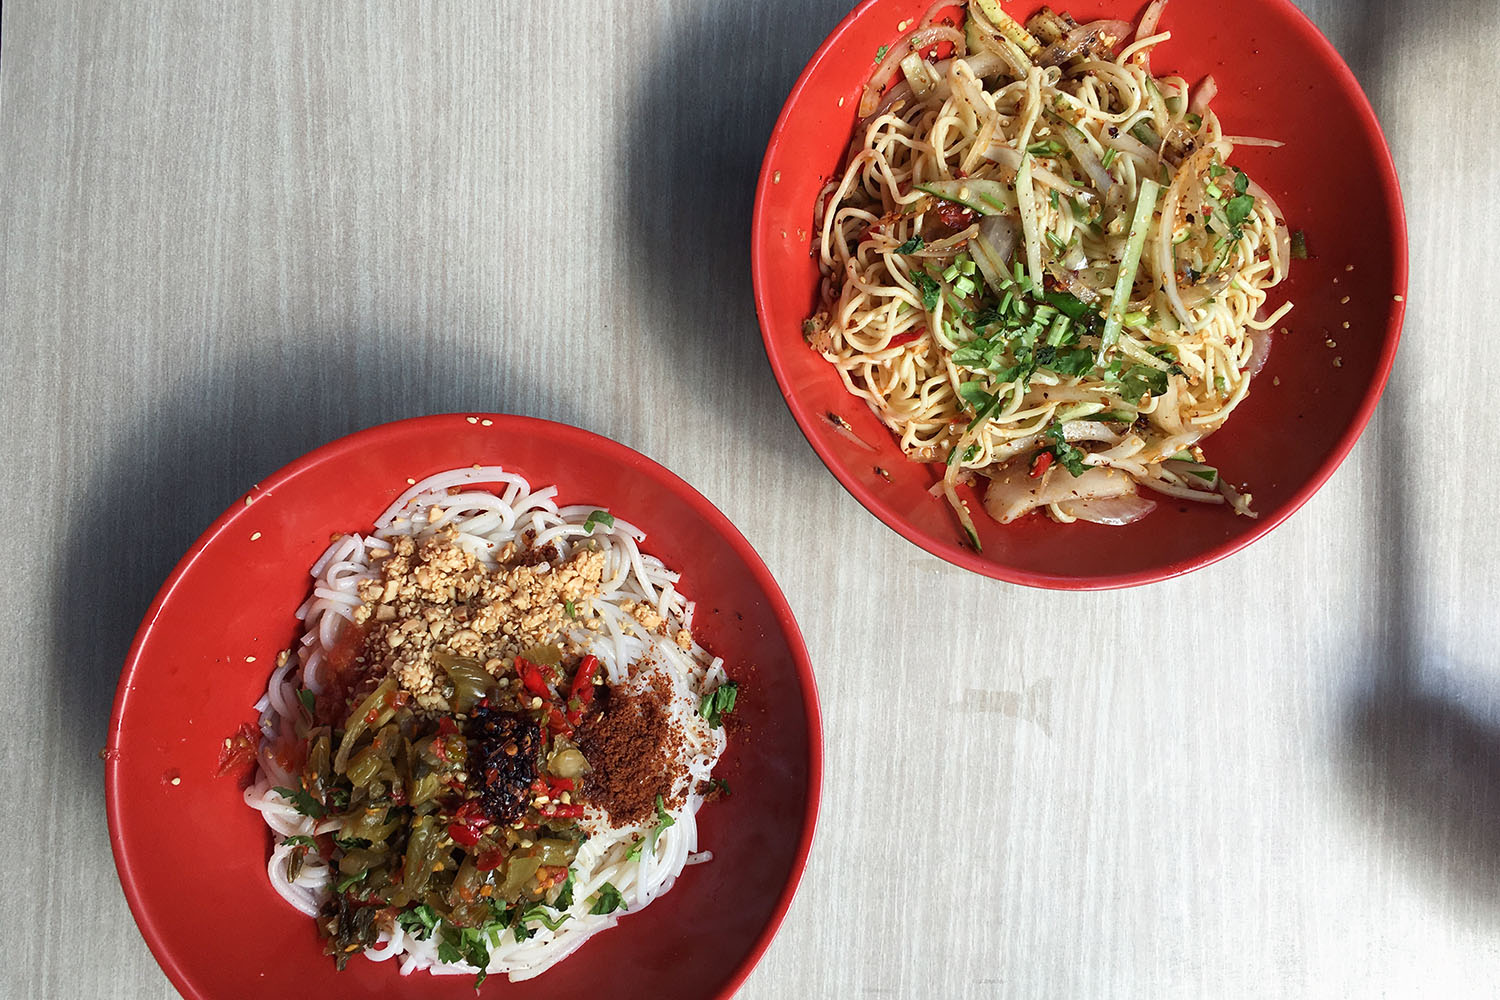 The best meal I had all summer: On the left, hot rice noodles with toasted chickpea flour, pickled mustard greens, herbs, lots and lots of chili, and a tomato-onion chutney/sauce; on the right, cold snappy egg or alkaline noodles with cucumber, herbs, raw onion, toasted seeds and chili.